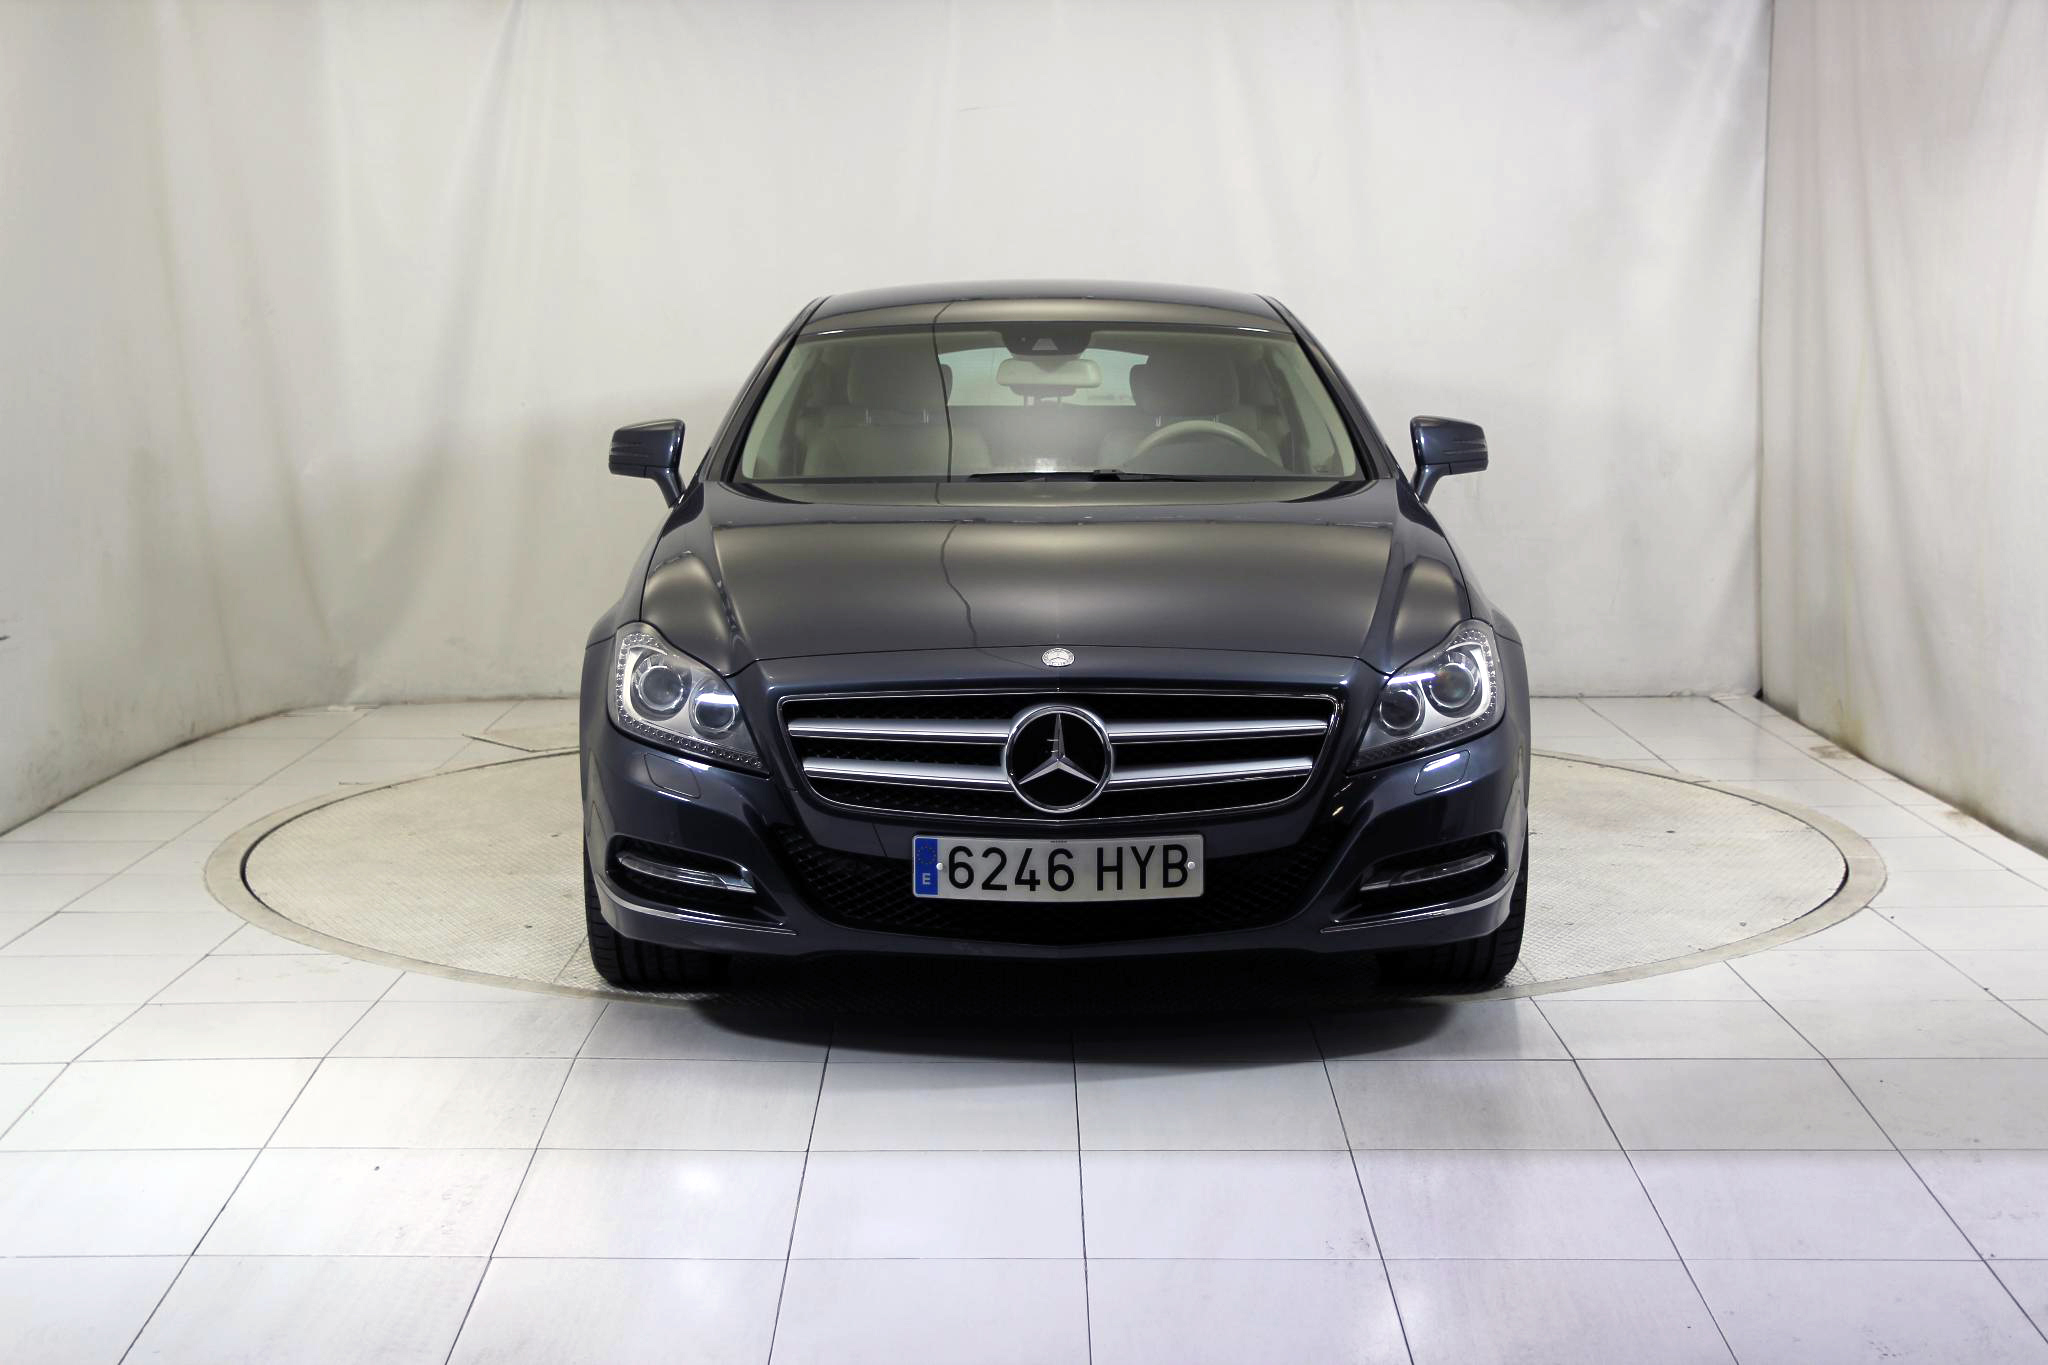 Mercedes-Benz Clase CLS CLS SHOOTING BRAKE 350 CDI AUTO imagen 3